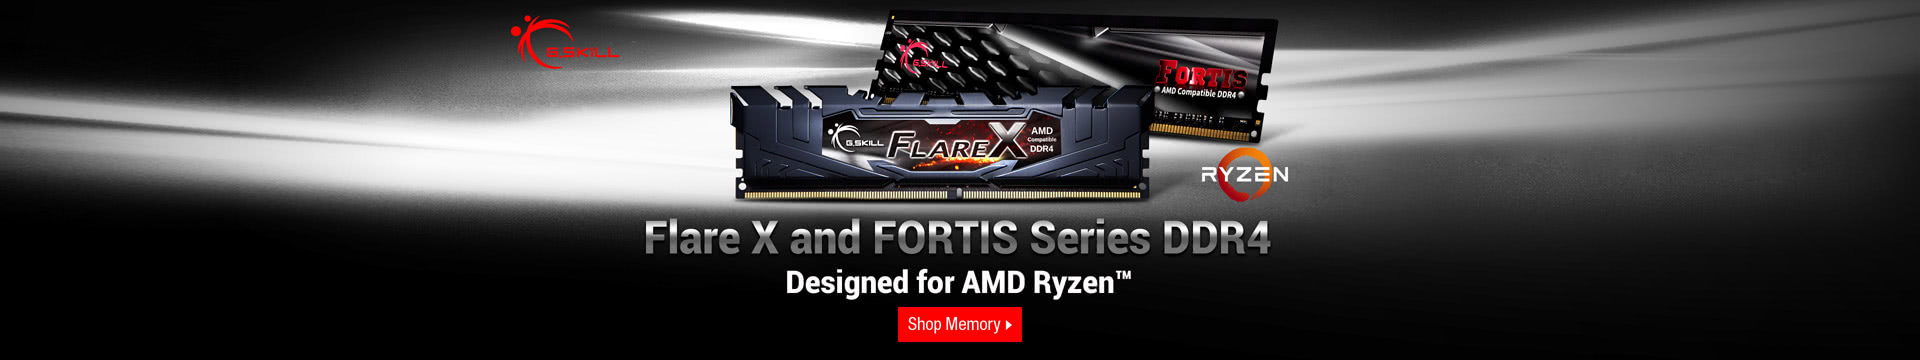 FLARE X AND FORTIS SERIES DDR4